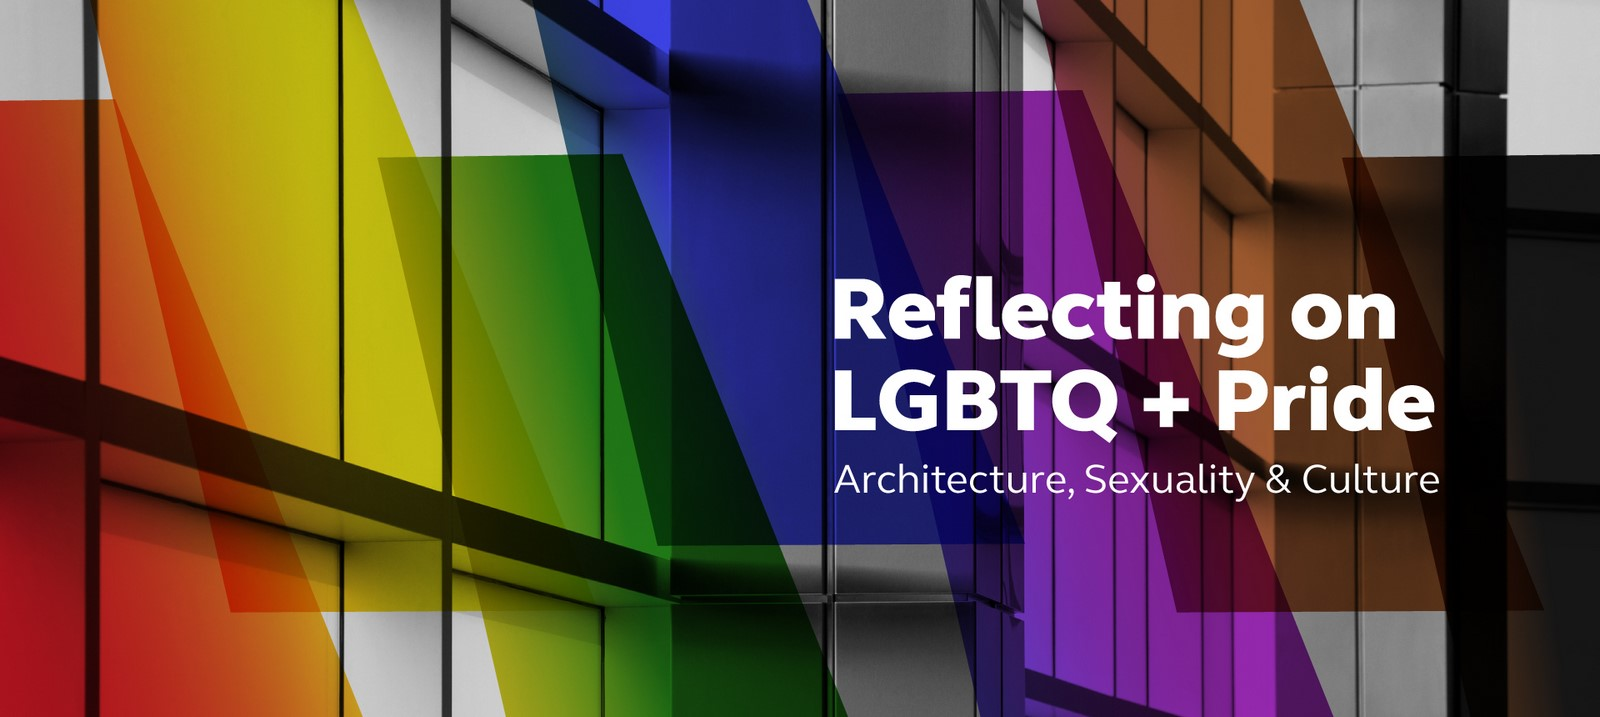 Is architecture really LGBT friendly - Sheet2